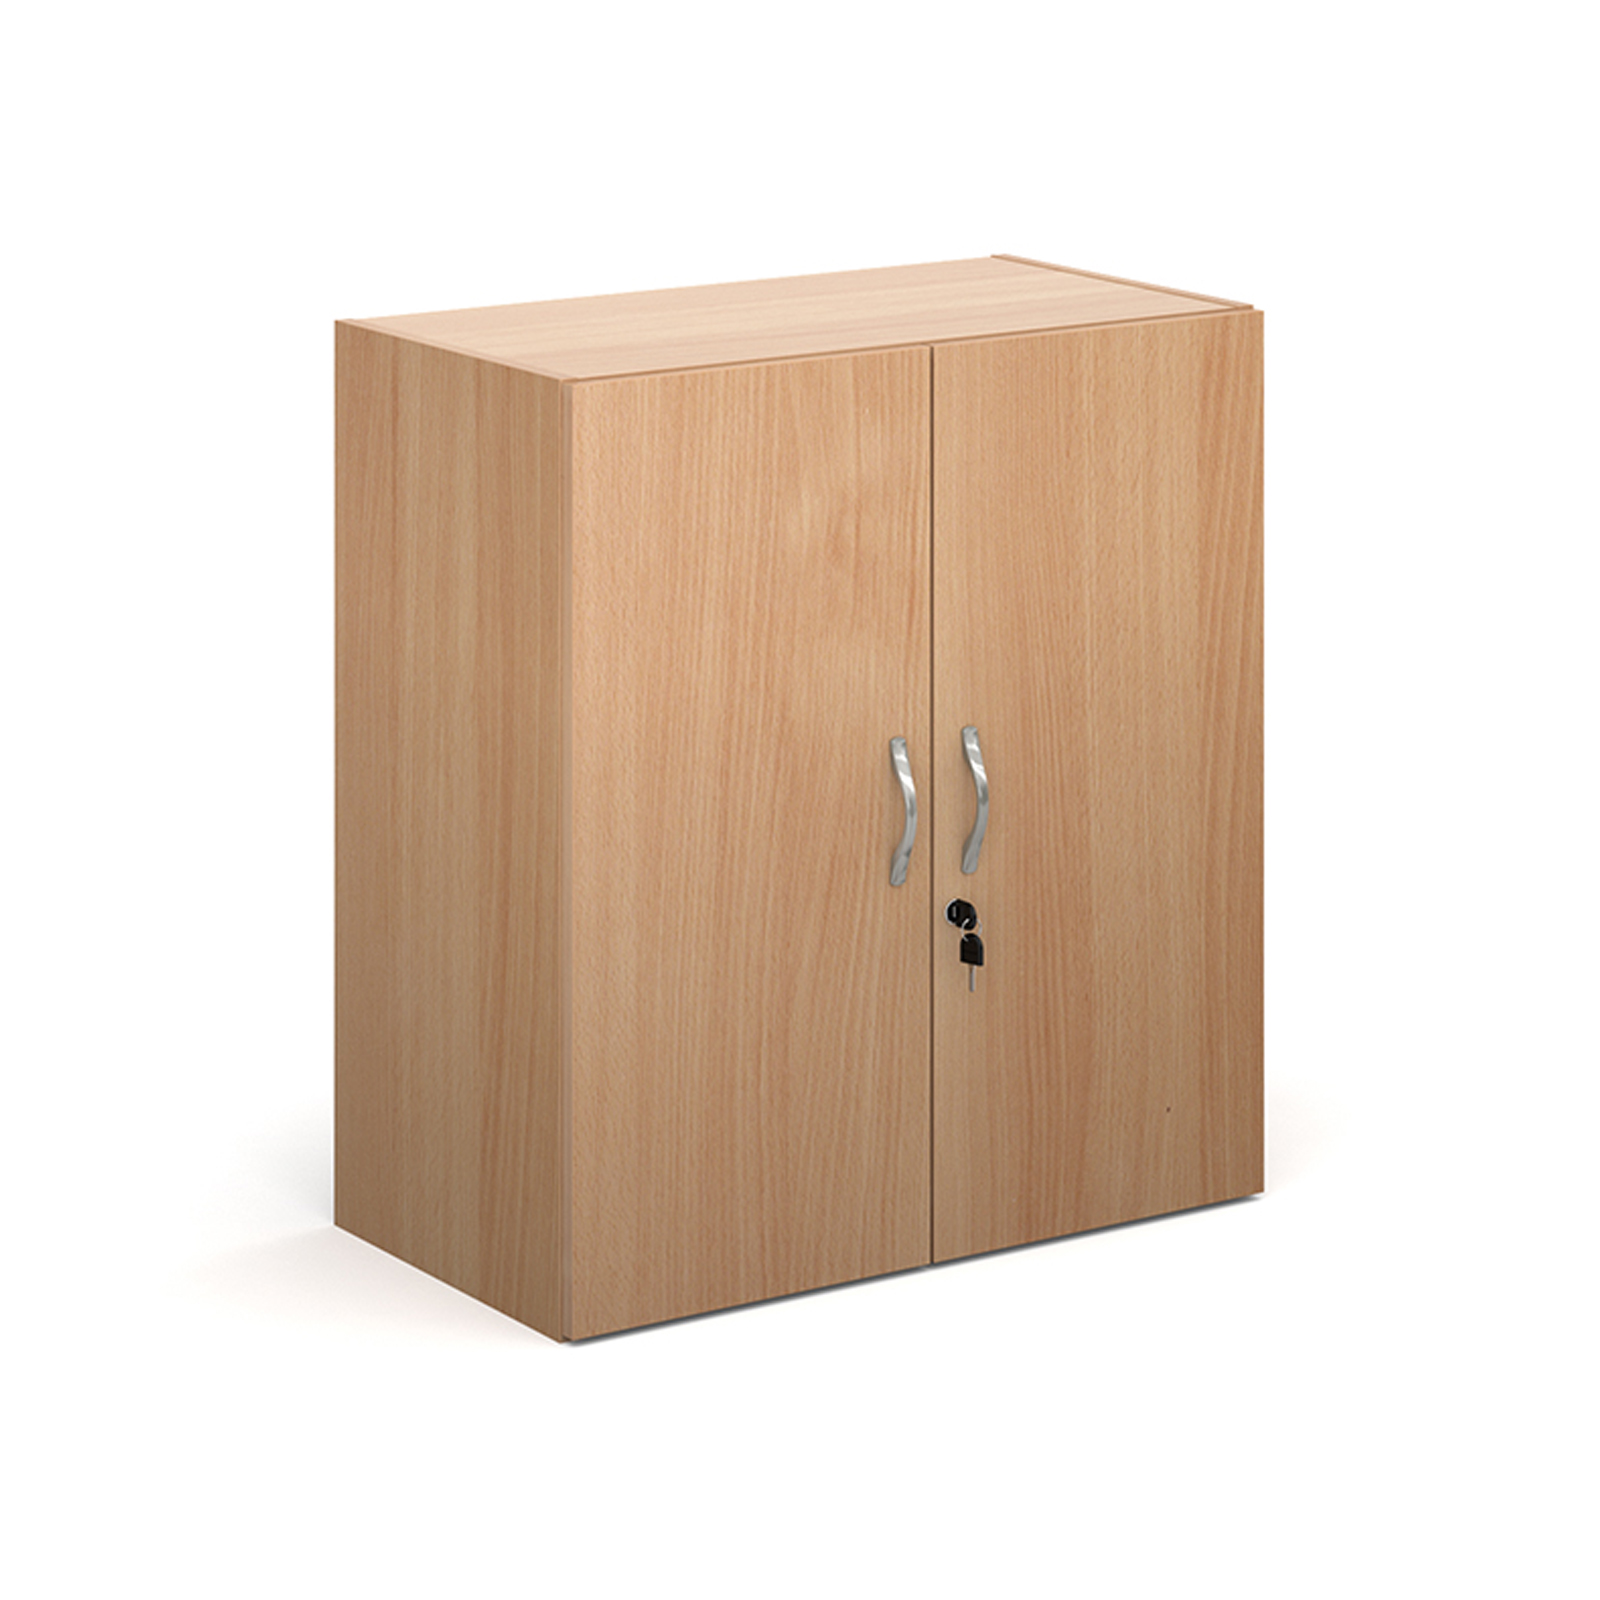 Contract double door cupboard 830mm high with 1 shelf - beech